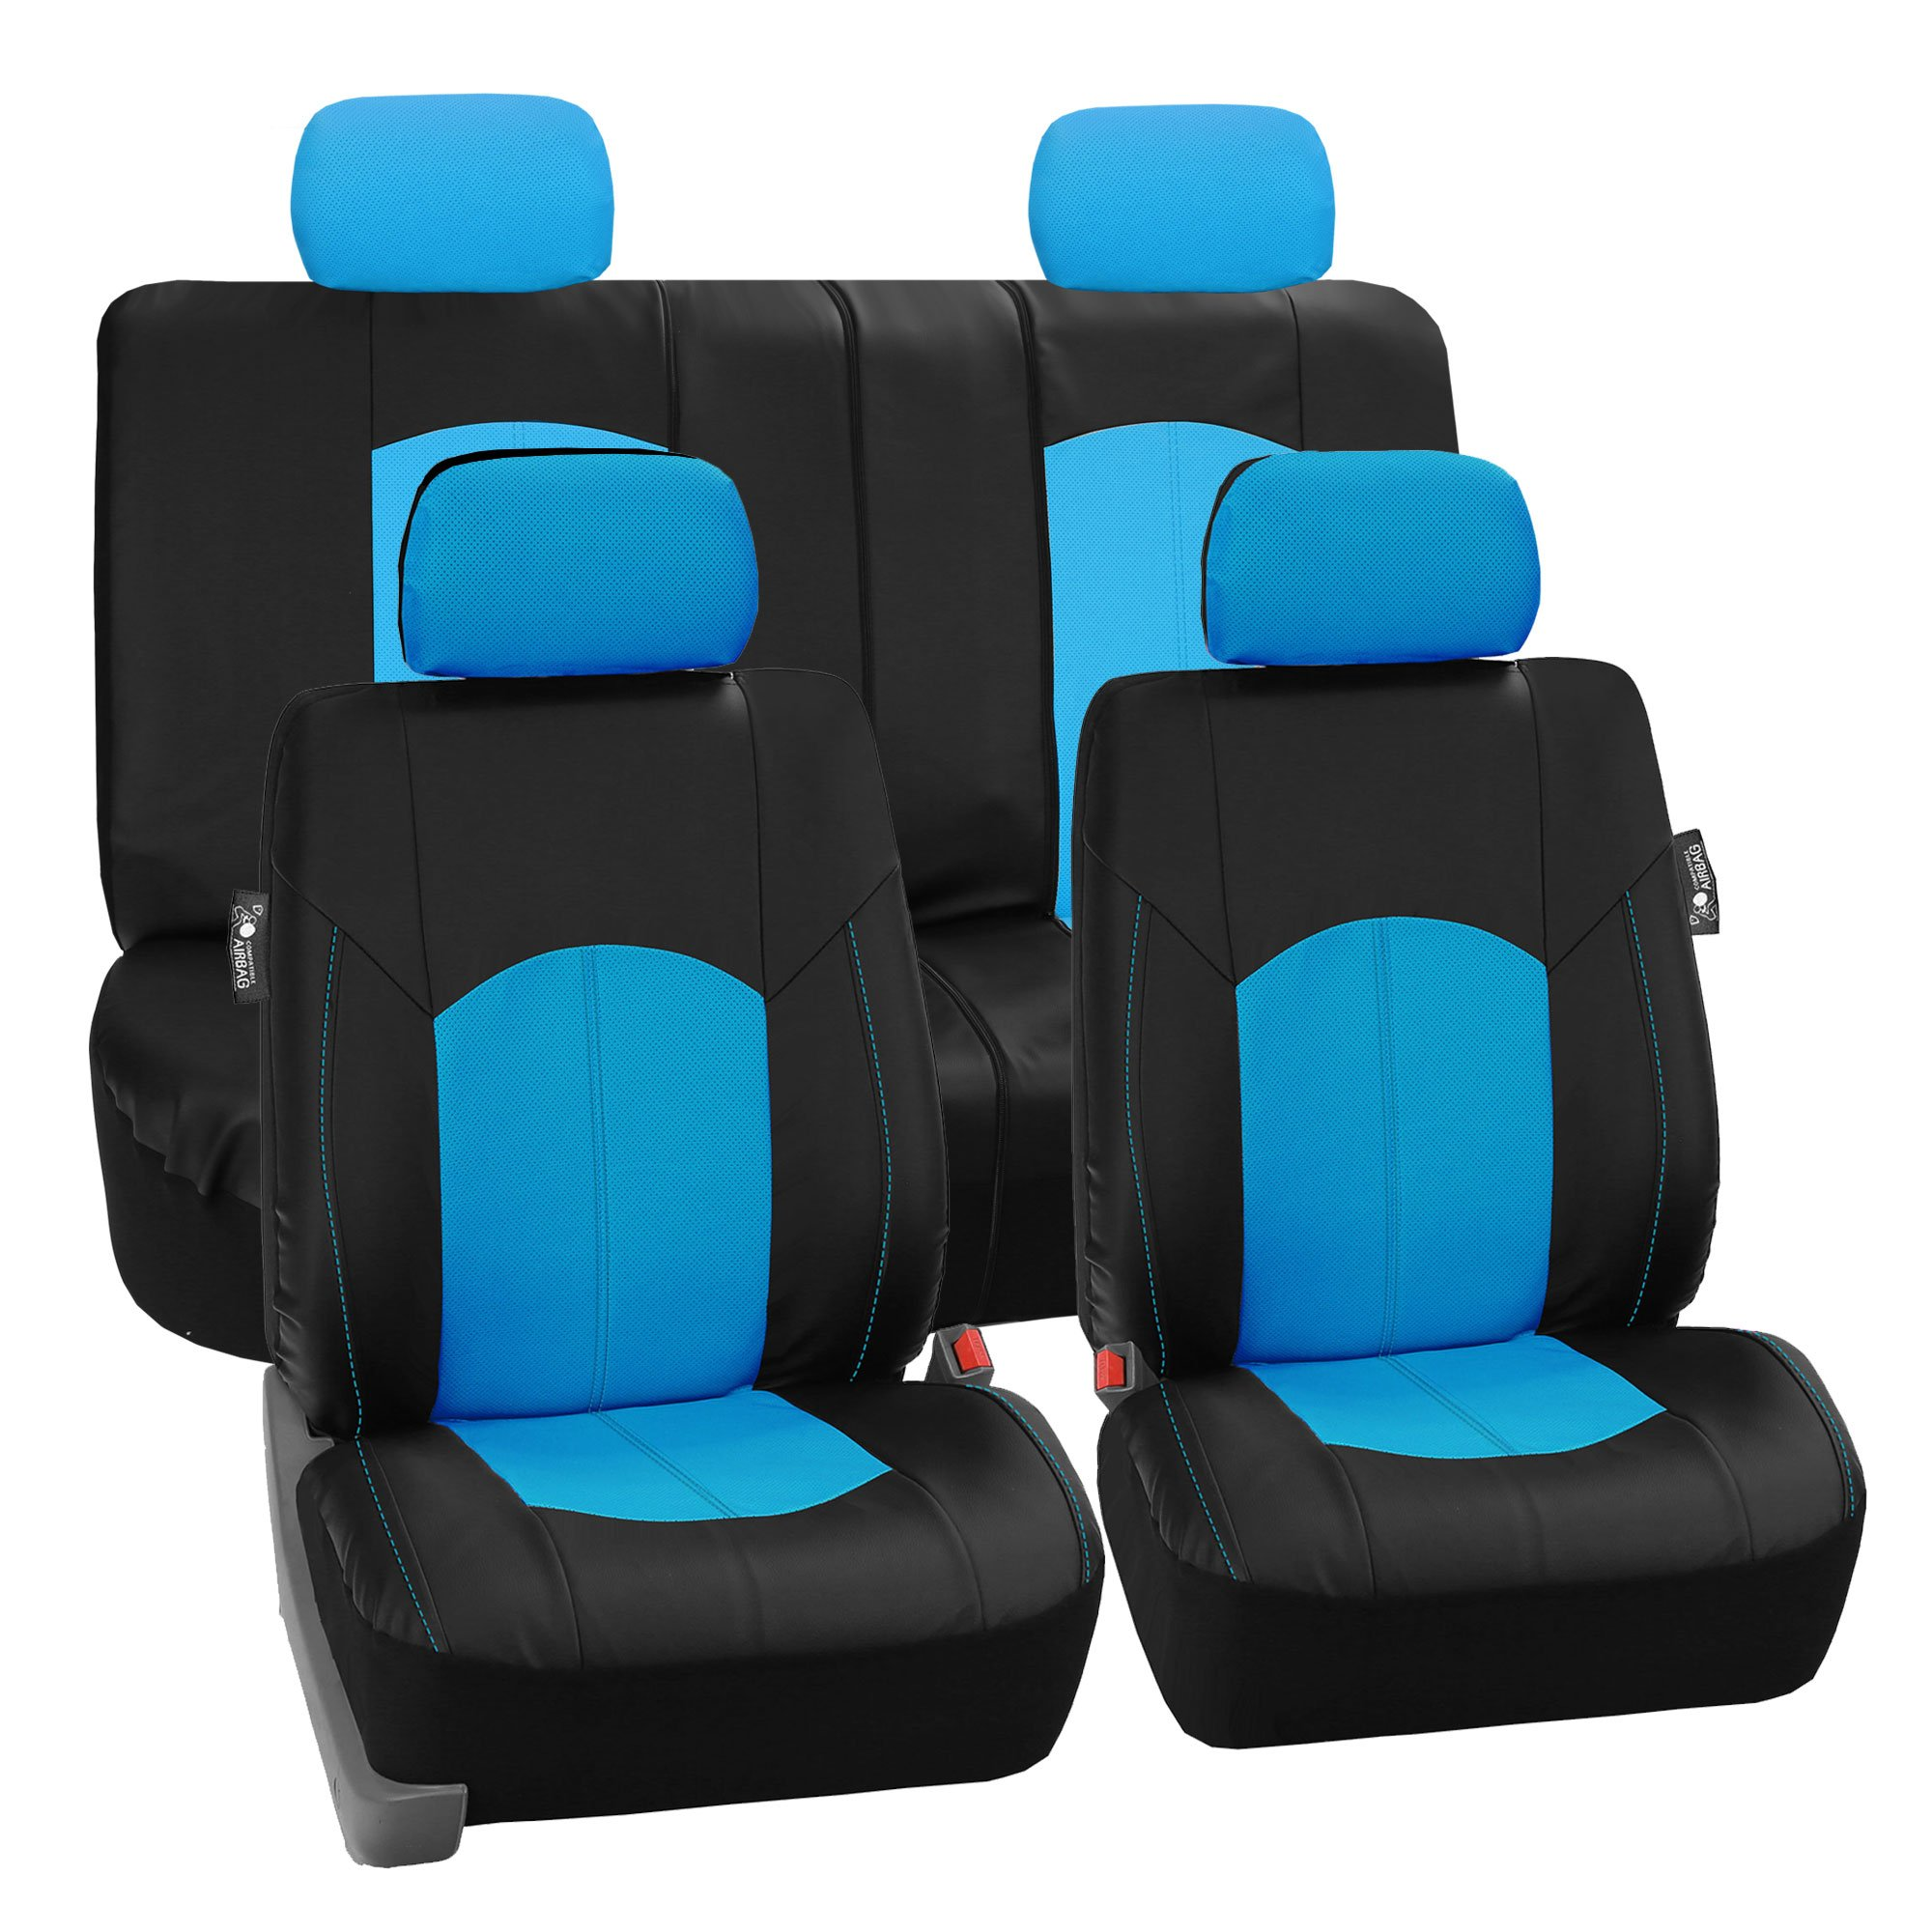 LIMITED TIME ONLY 30% OFF: FH GROUP FH-PU008114 Perforated Leatherette Full Set Car Seat Covers, (Airbag & Split Ready), Blue / Black Color- Fit Most Car, Truck, Suv, or Van